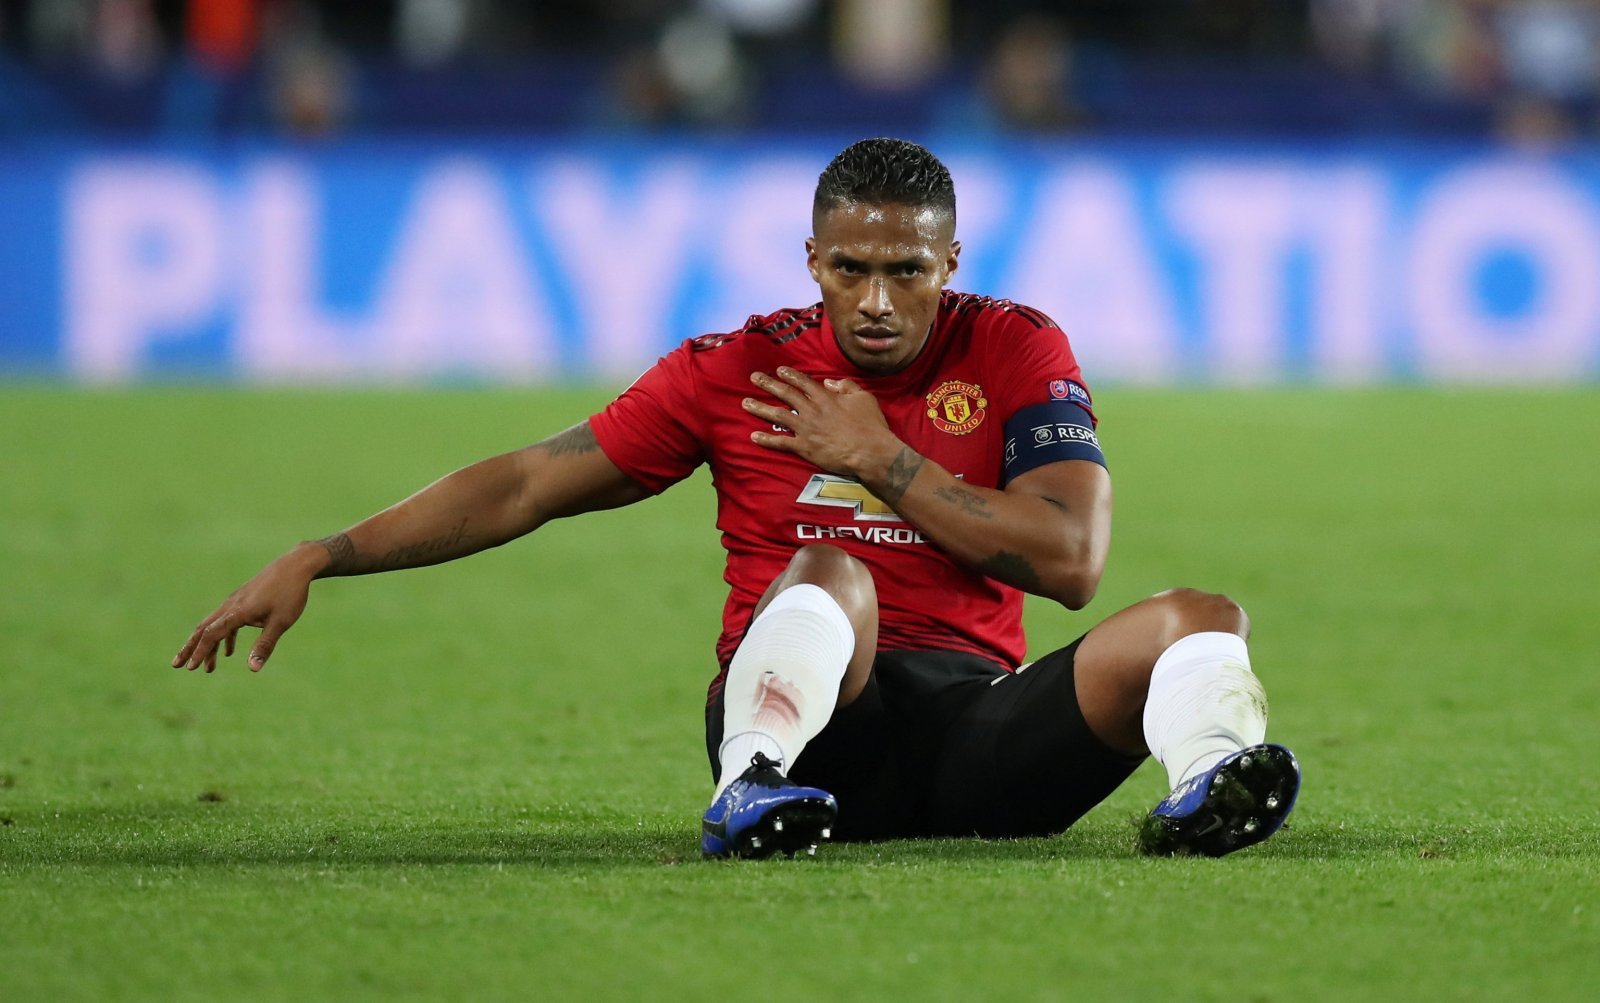 Antonio Valencia can bring much-needed experience to West Ham United